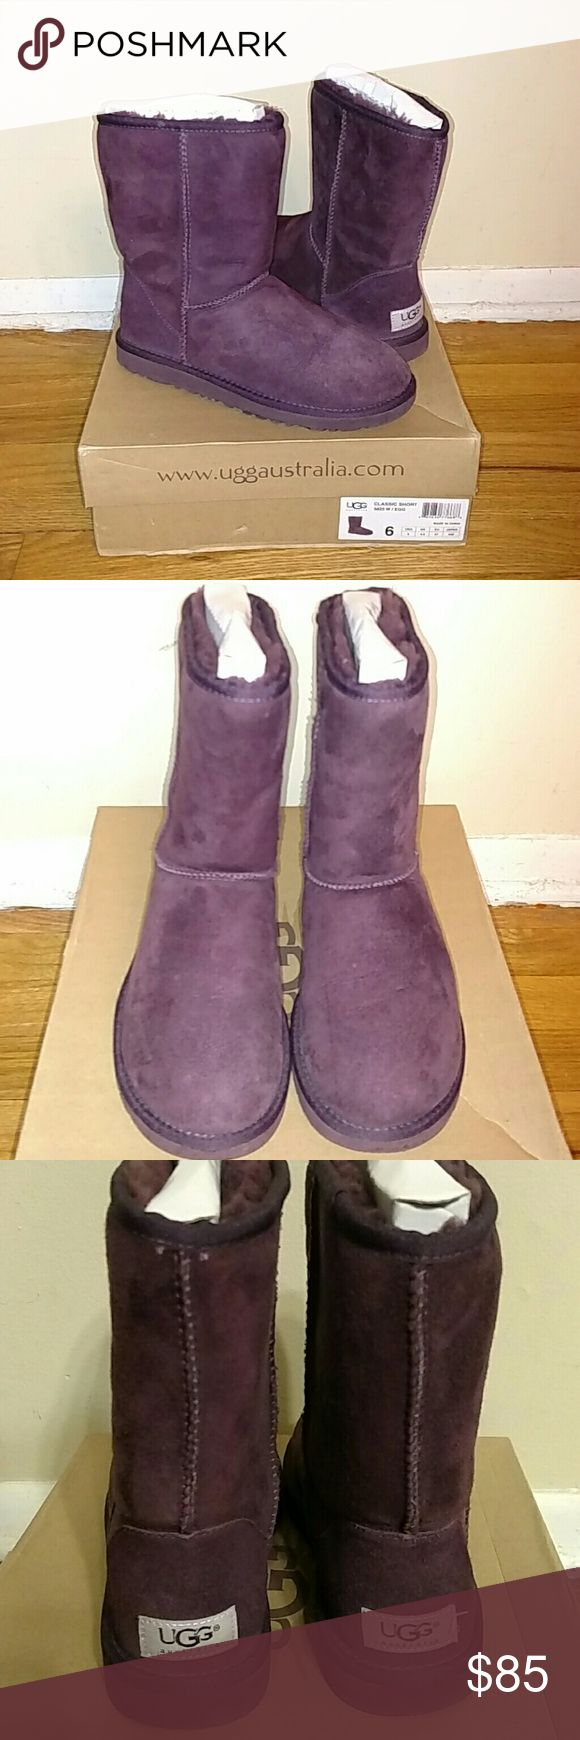 Ugg Classic Short Boots Color Eggplant, Authentic in good condition UGG Shoes Winter & Rain Boots